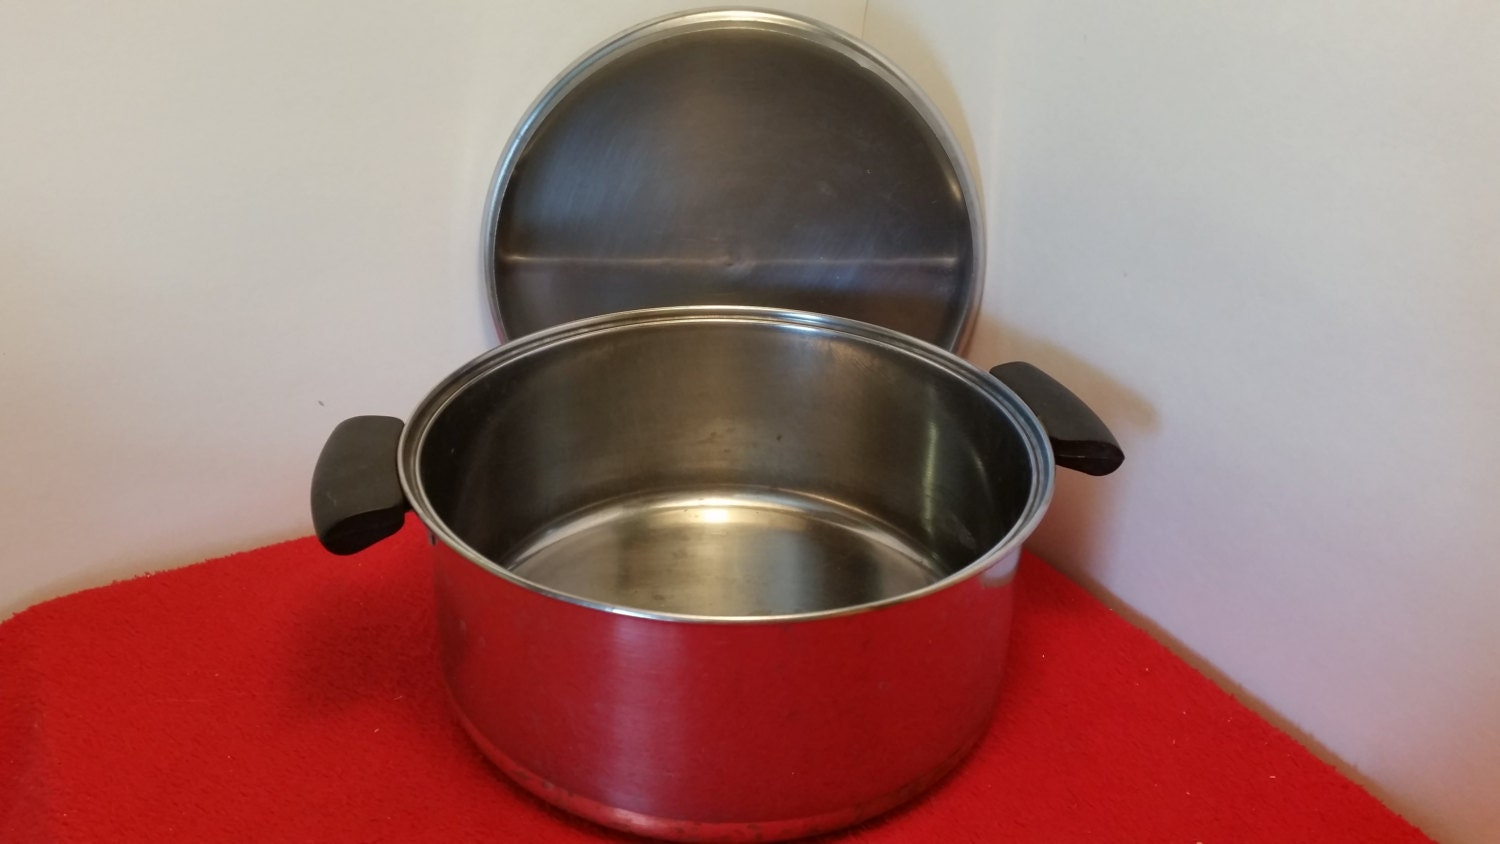 Vintage Revereware Pot Dutch Oven Soup Pot Copper Bottom